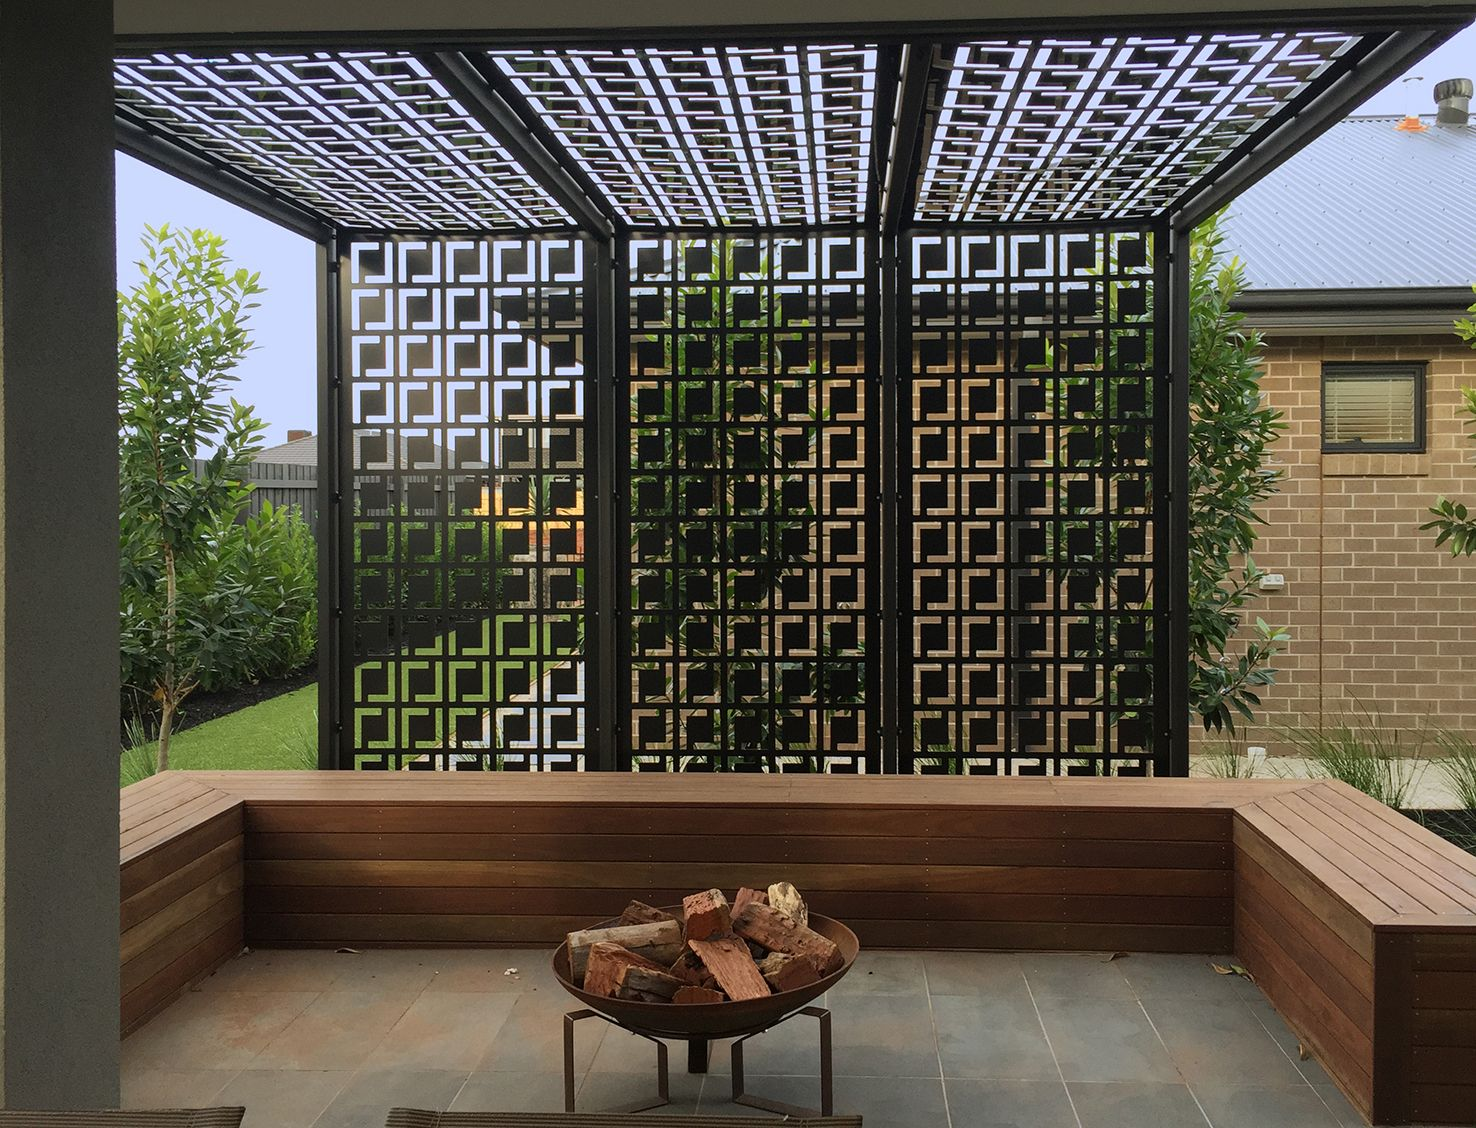 Pergola privacy screen made using decorative screens for Large outdoor privacy screen